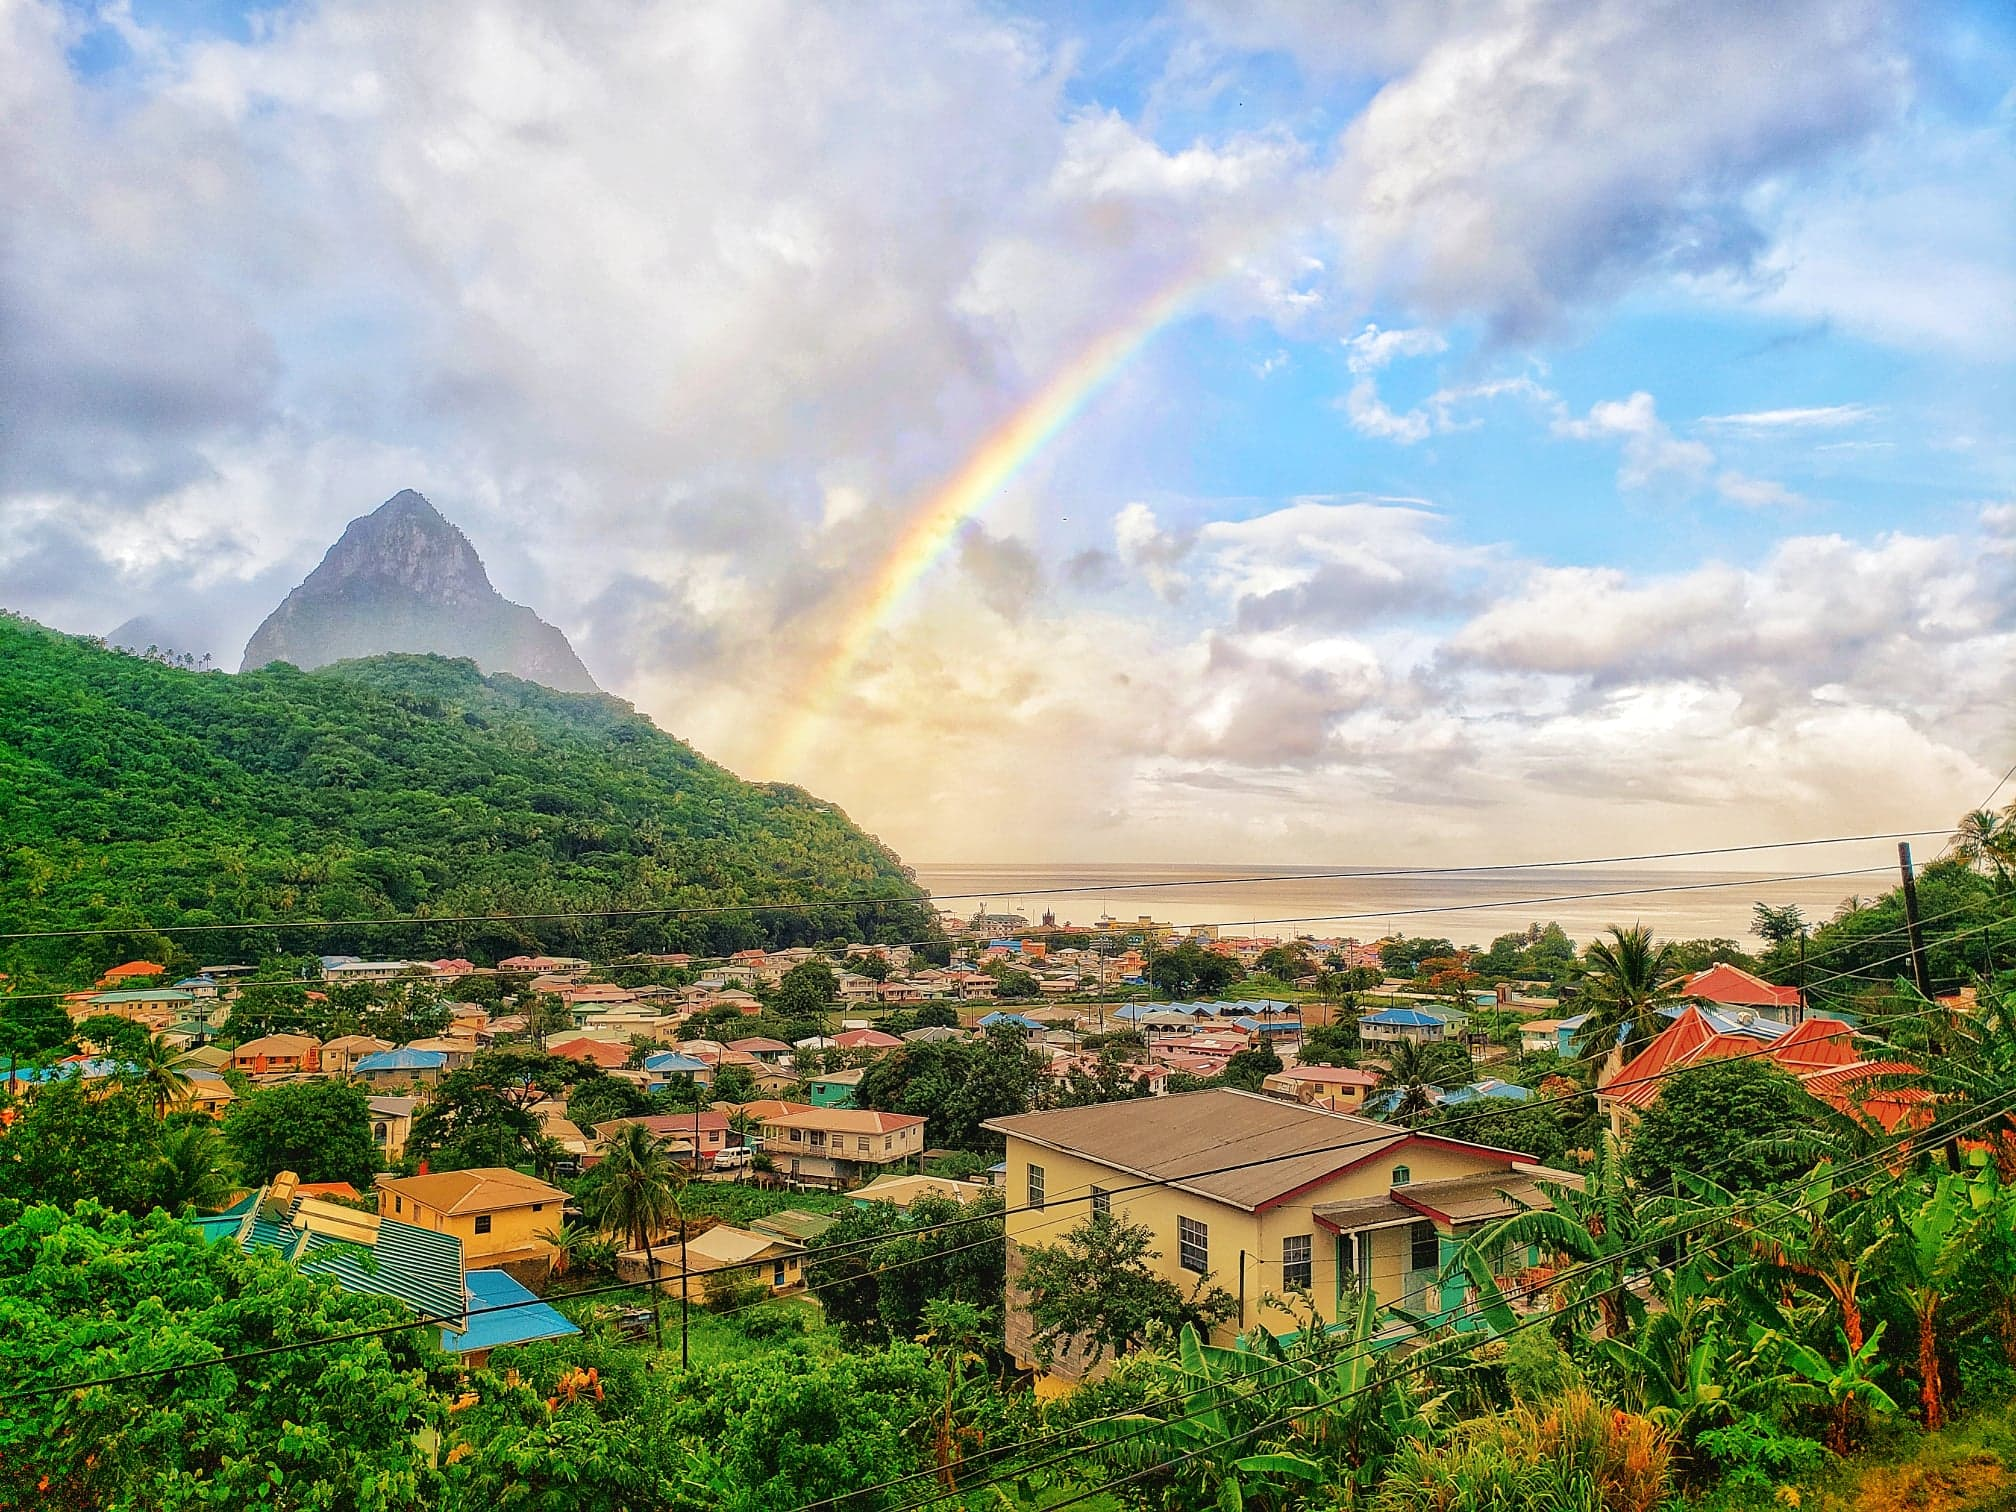 View of the Pitons in Soufriere, St Lucia with a rainbow photographed by Vision Balm in Charleston, SC.